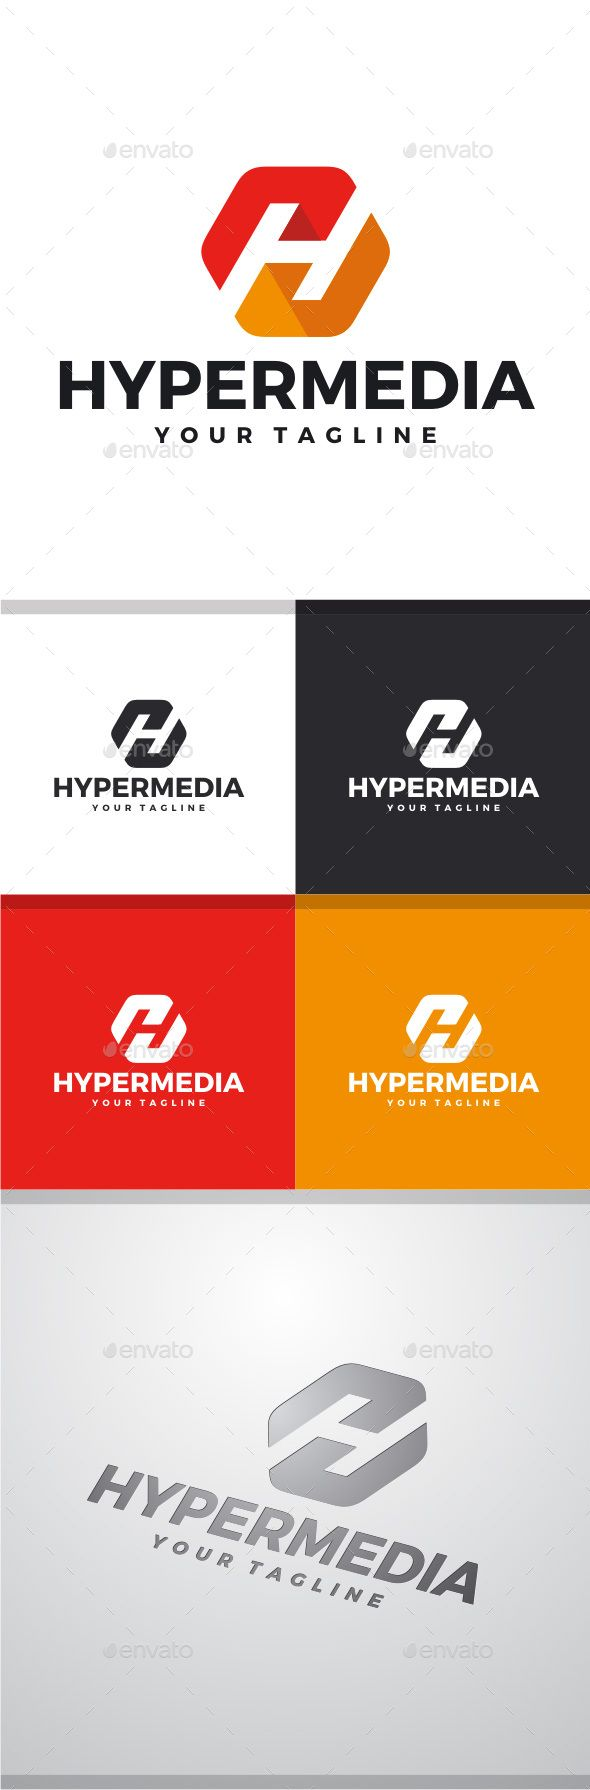 Hyper Media - Letter H Logo  — PSD Template #icon #vector • Download ➝ https://graphicriver.net/item/hyper-media-letter-h-logo/11526960?ref=pxcr